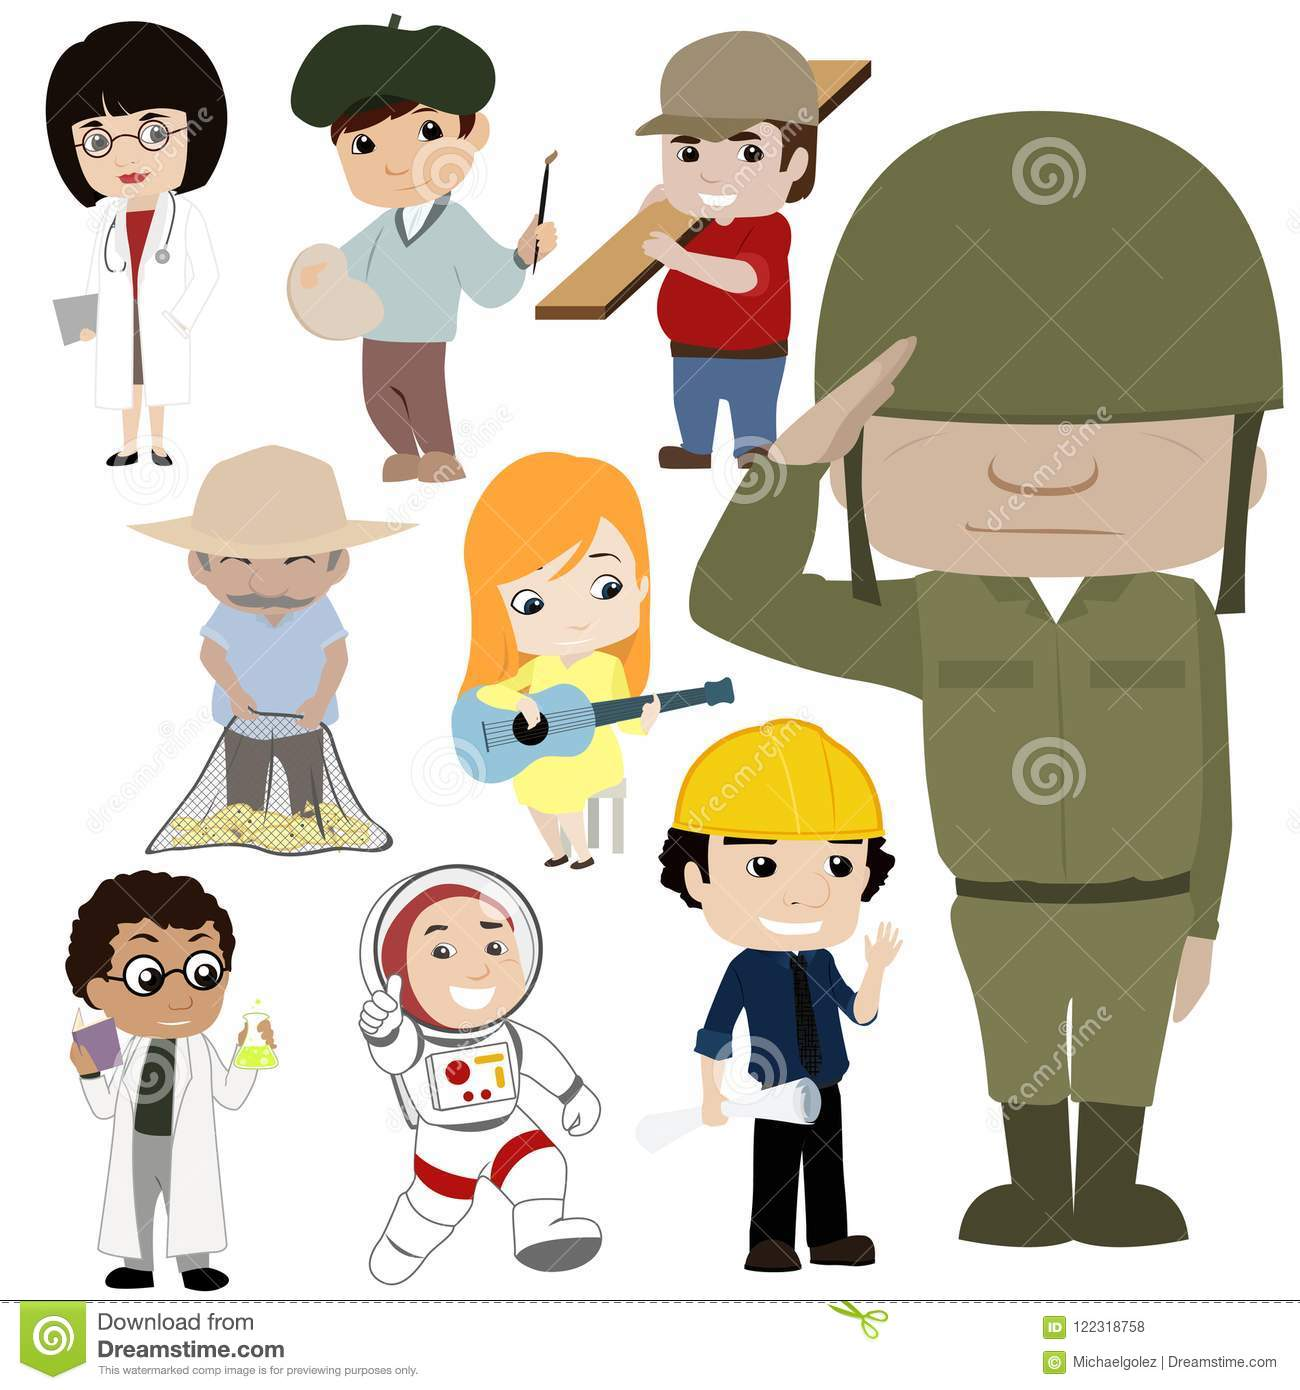 Professions And Jobs Cartoon Collection Stock Illustration Illustration Of Professions Collection 122318758